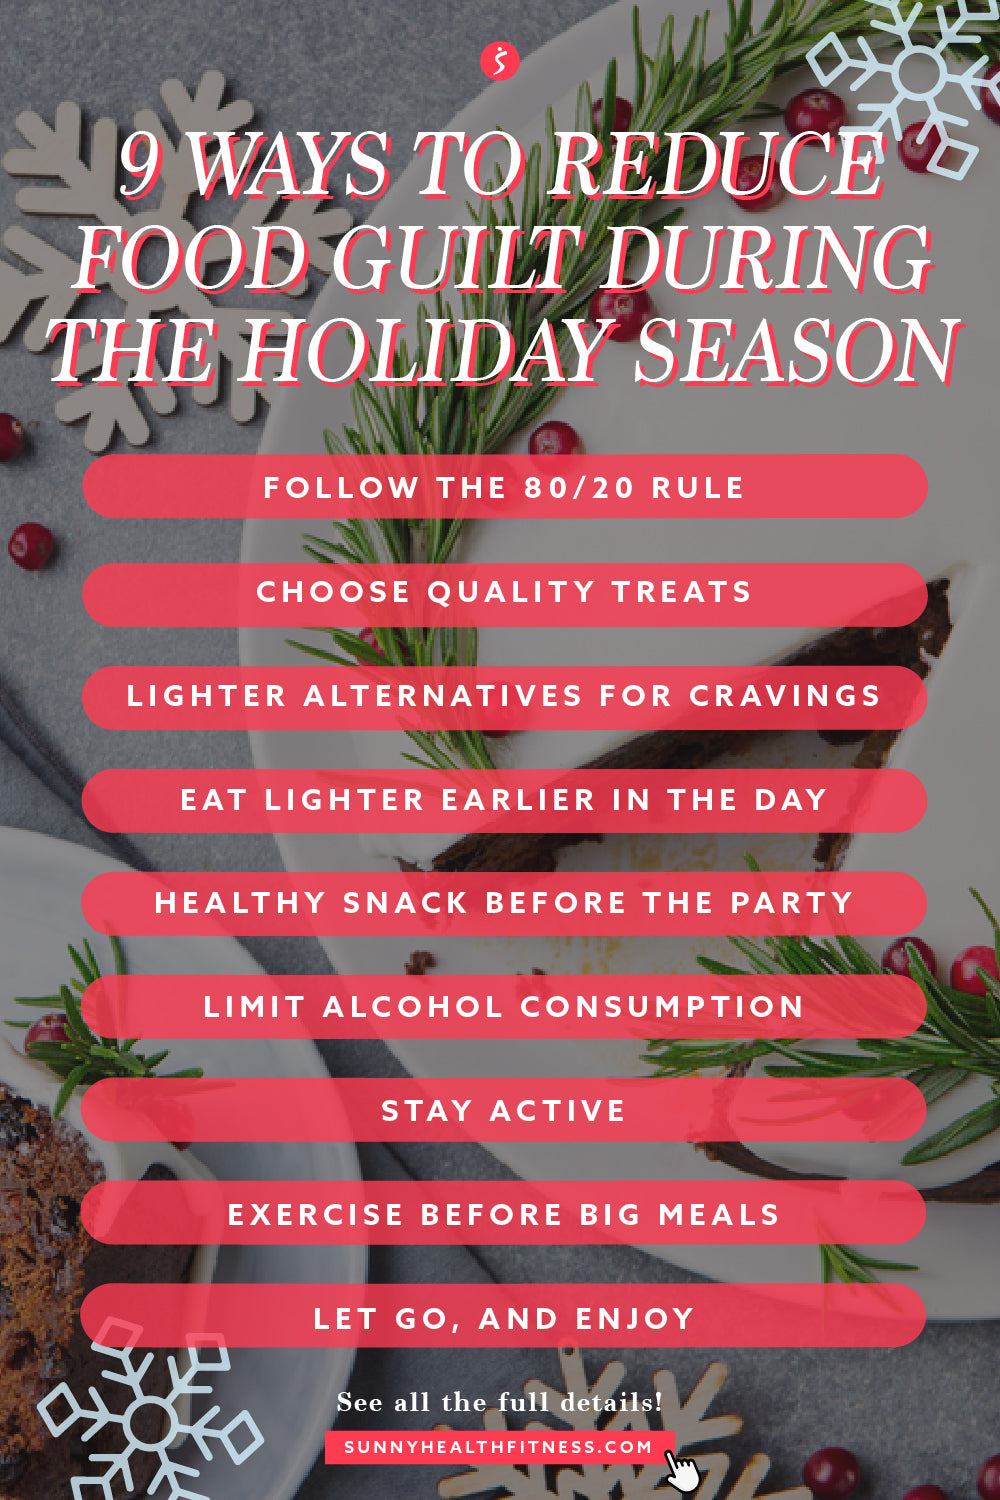 9 Ways to Reduce Food Guilt During the Holiday Season Infographic